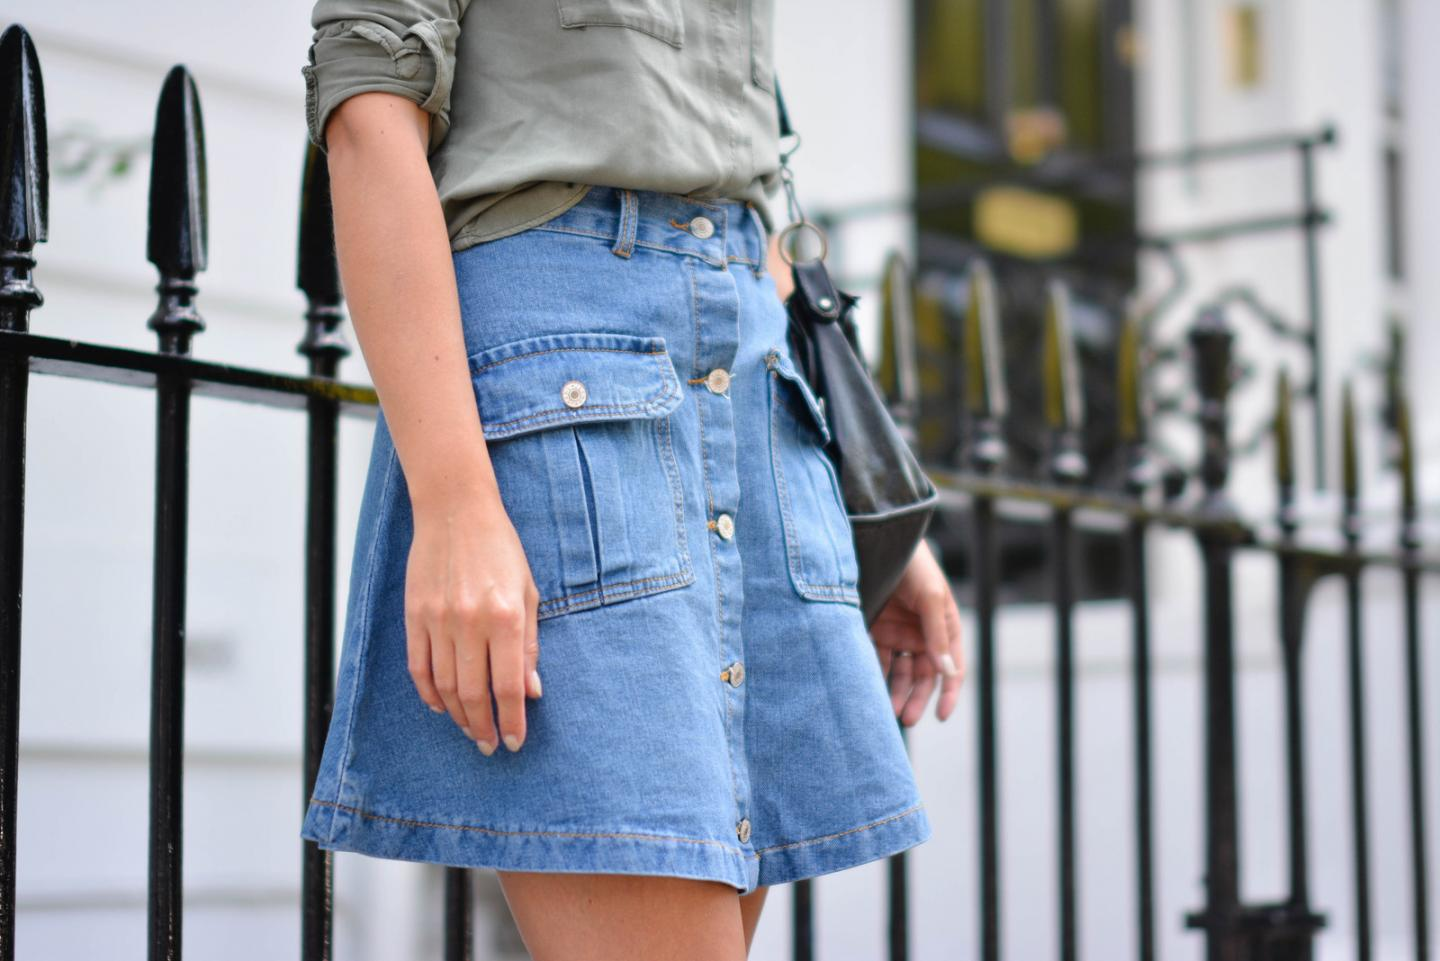 EJSTYLE - Emma Hill wears button up denim skirt with pockets with a khaki shirt, how to dress for summer